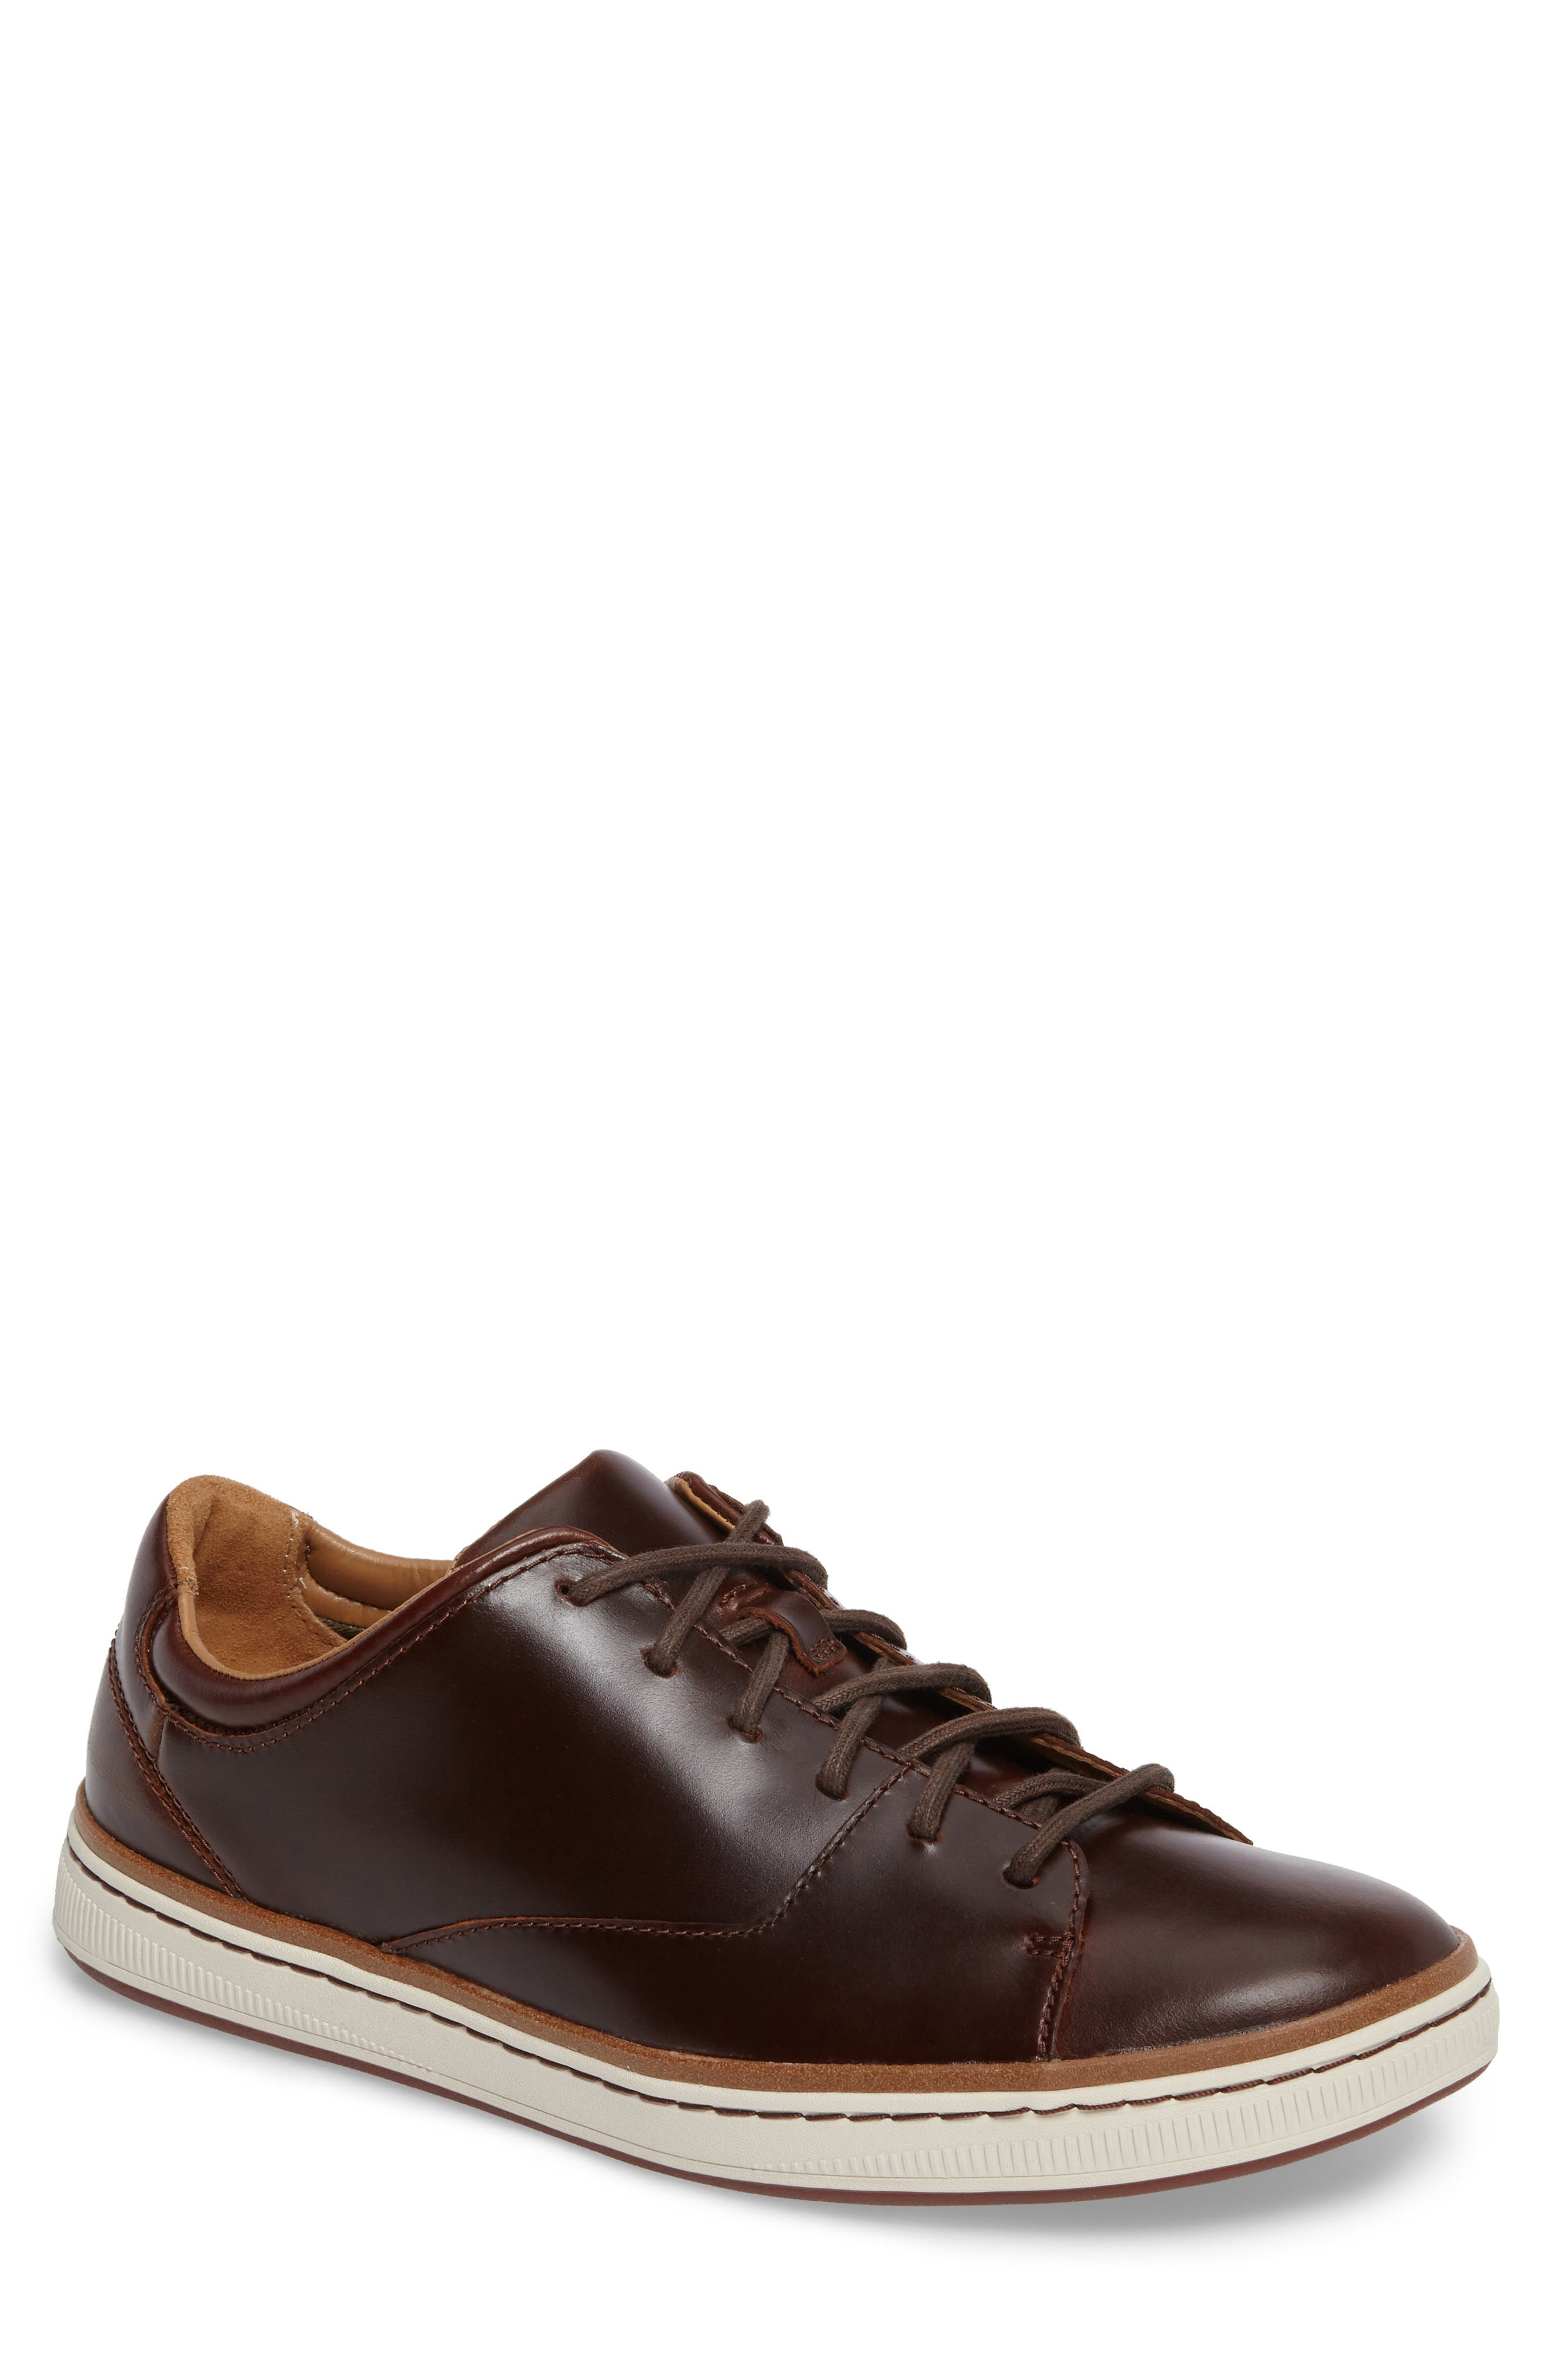 CLARKS<SUP>®</SUP>, Norsen Lace Sneaker, Main thumbnail 1, color, DARK TAN LEATHER